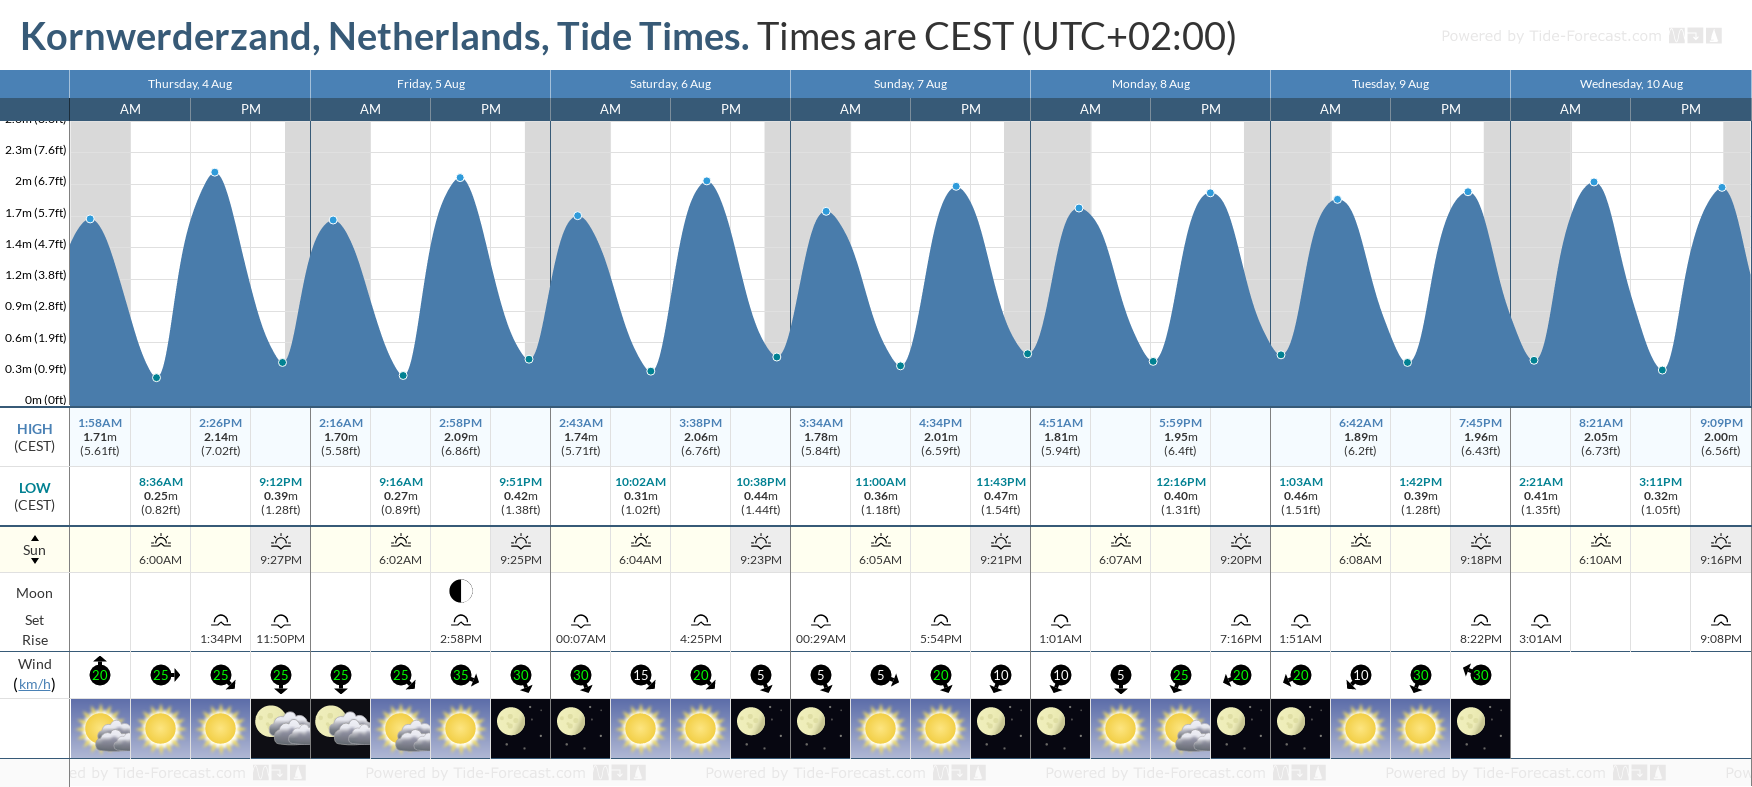 Kornwerderzand, Netherlands Tide Chart including high and low tide tide times for the next 7 days